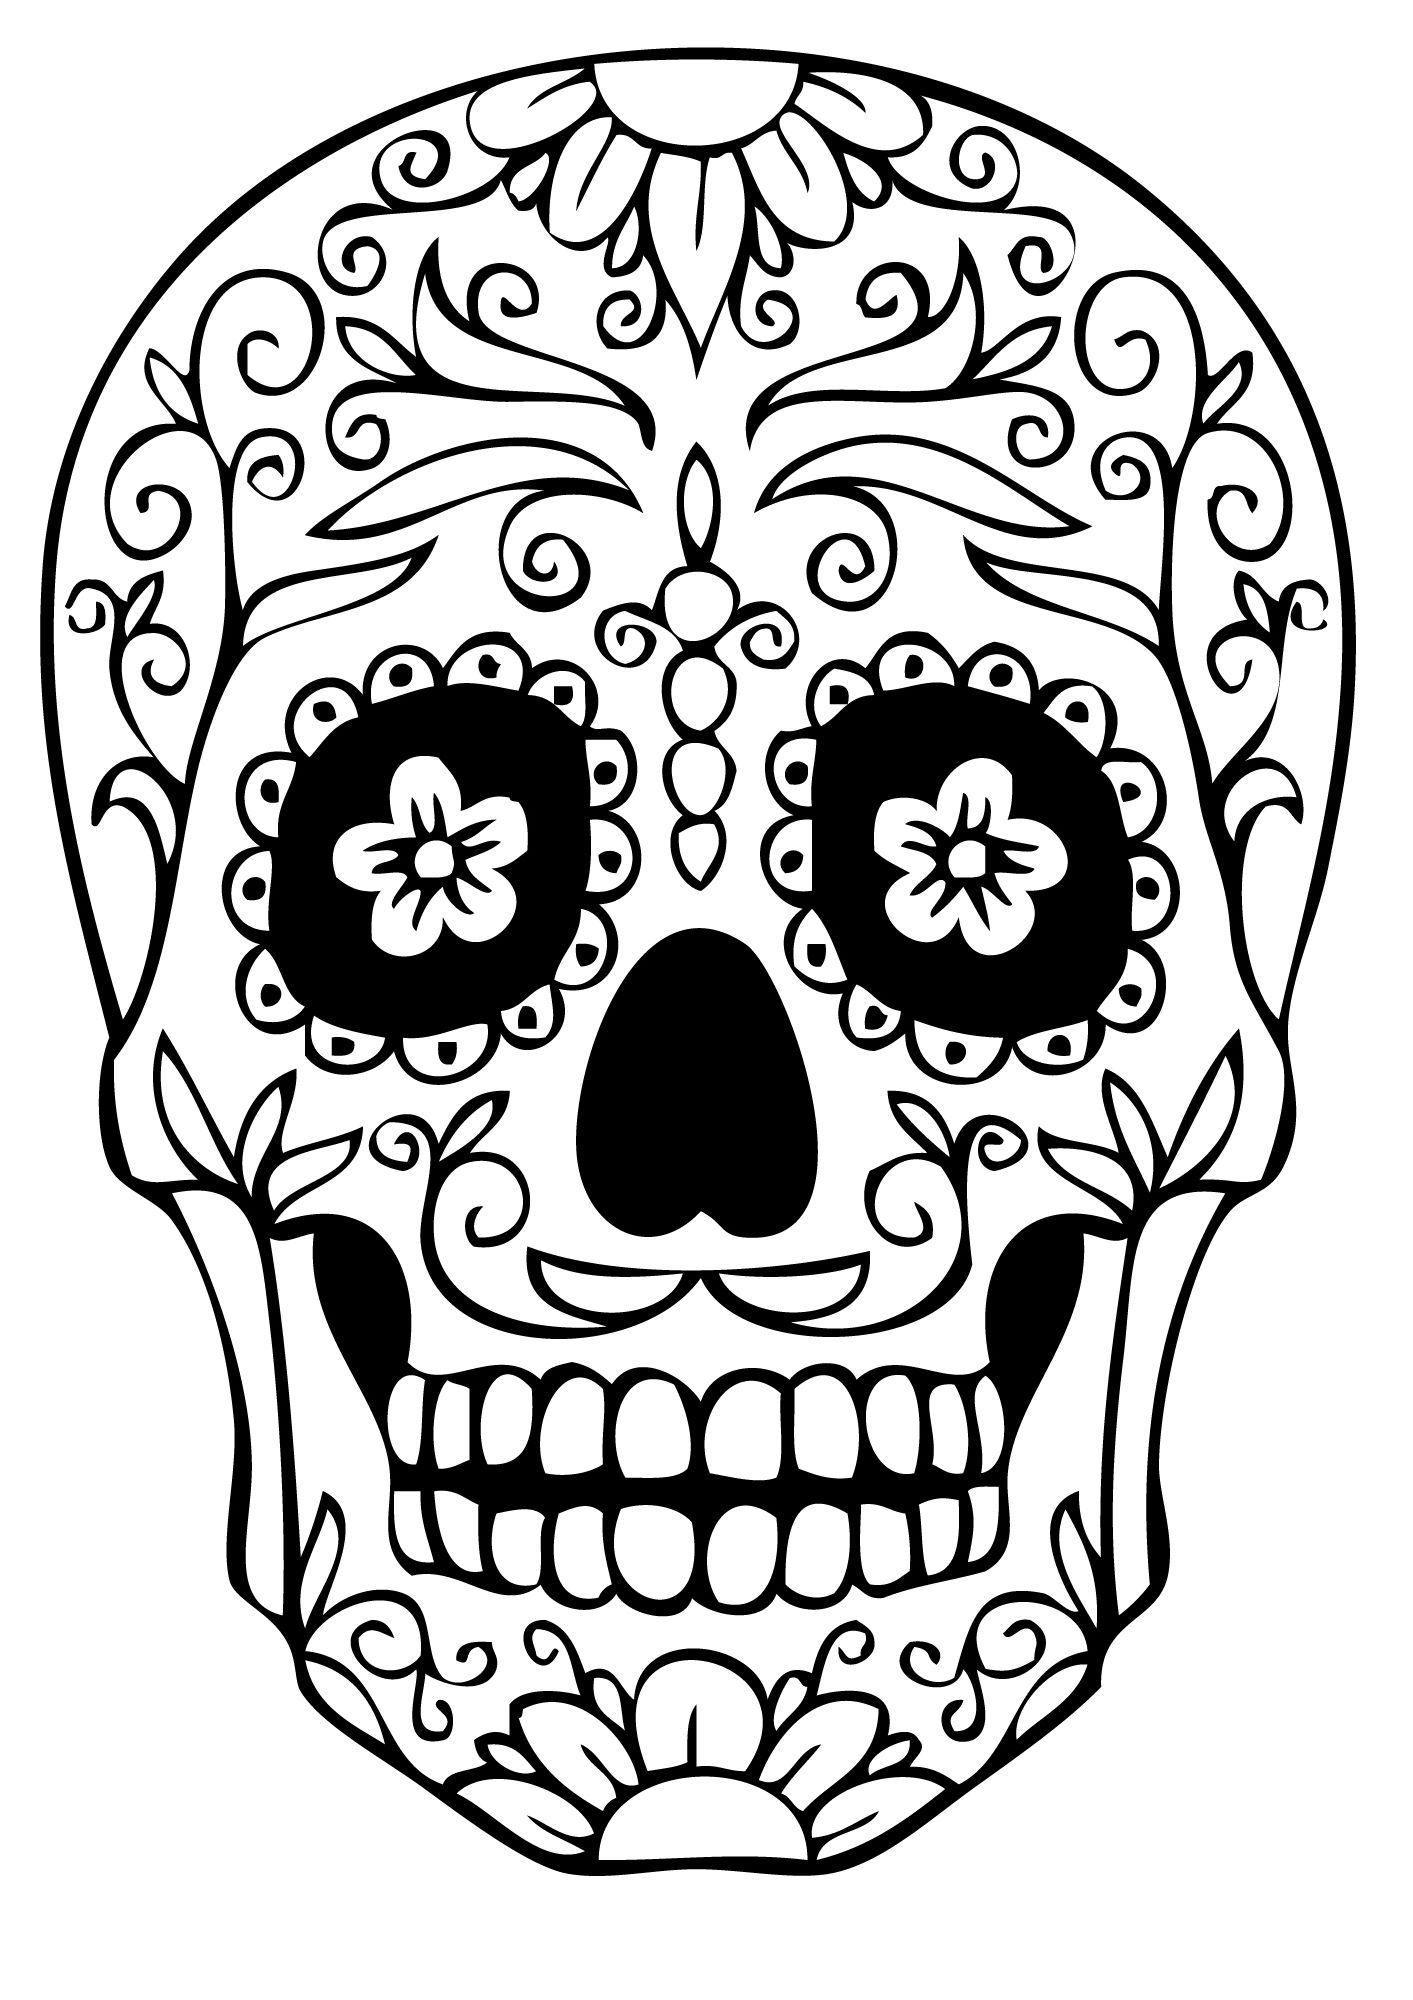 day of the dead skull mask template - day of the dead have them realistically shade the skull